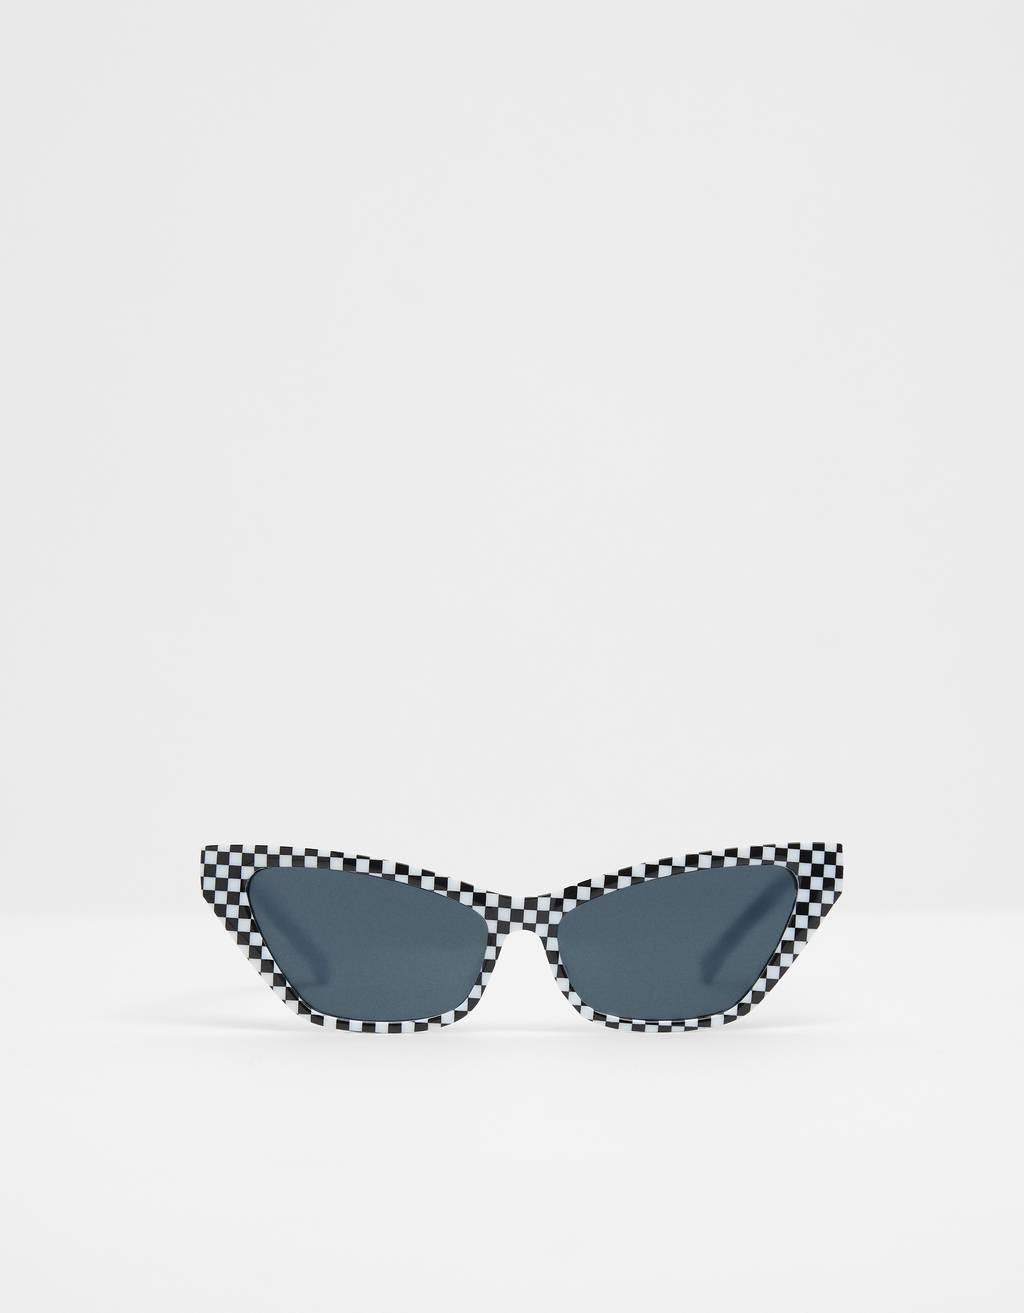 Checked sunglasses